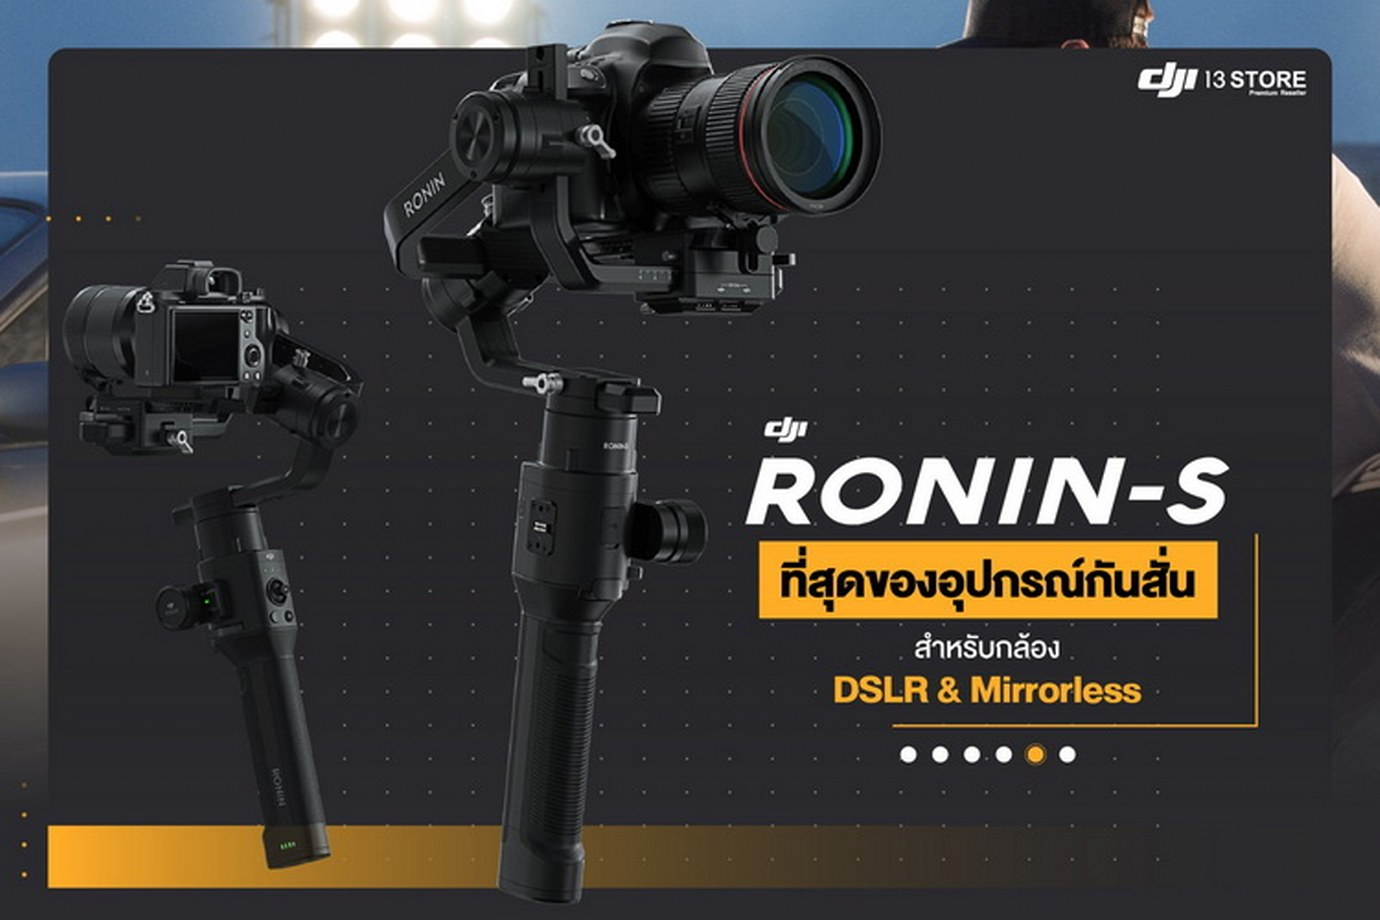 Ronin-S Overview